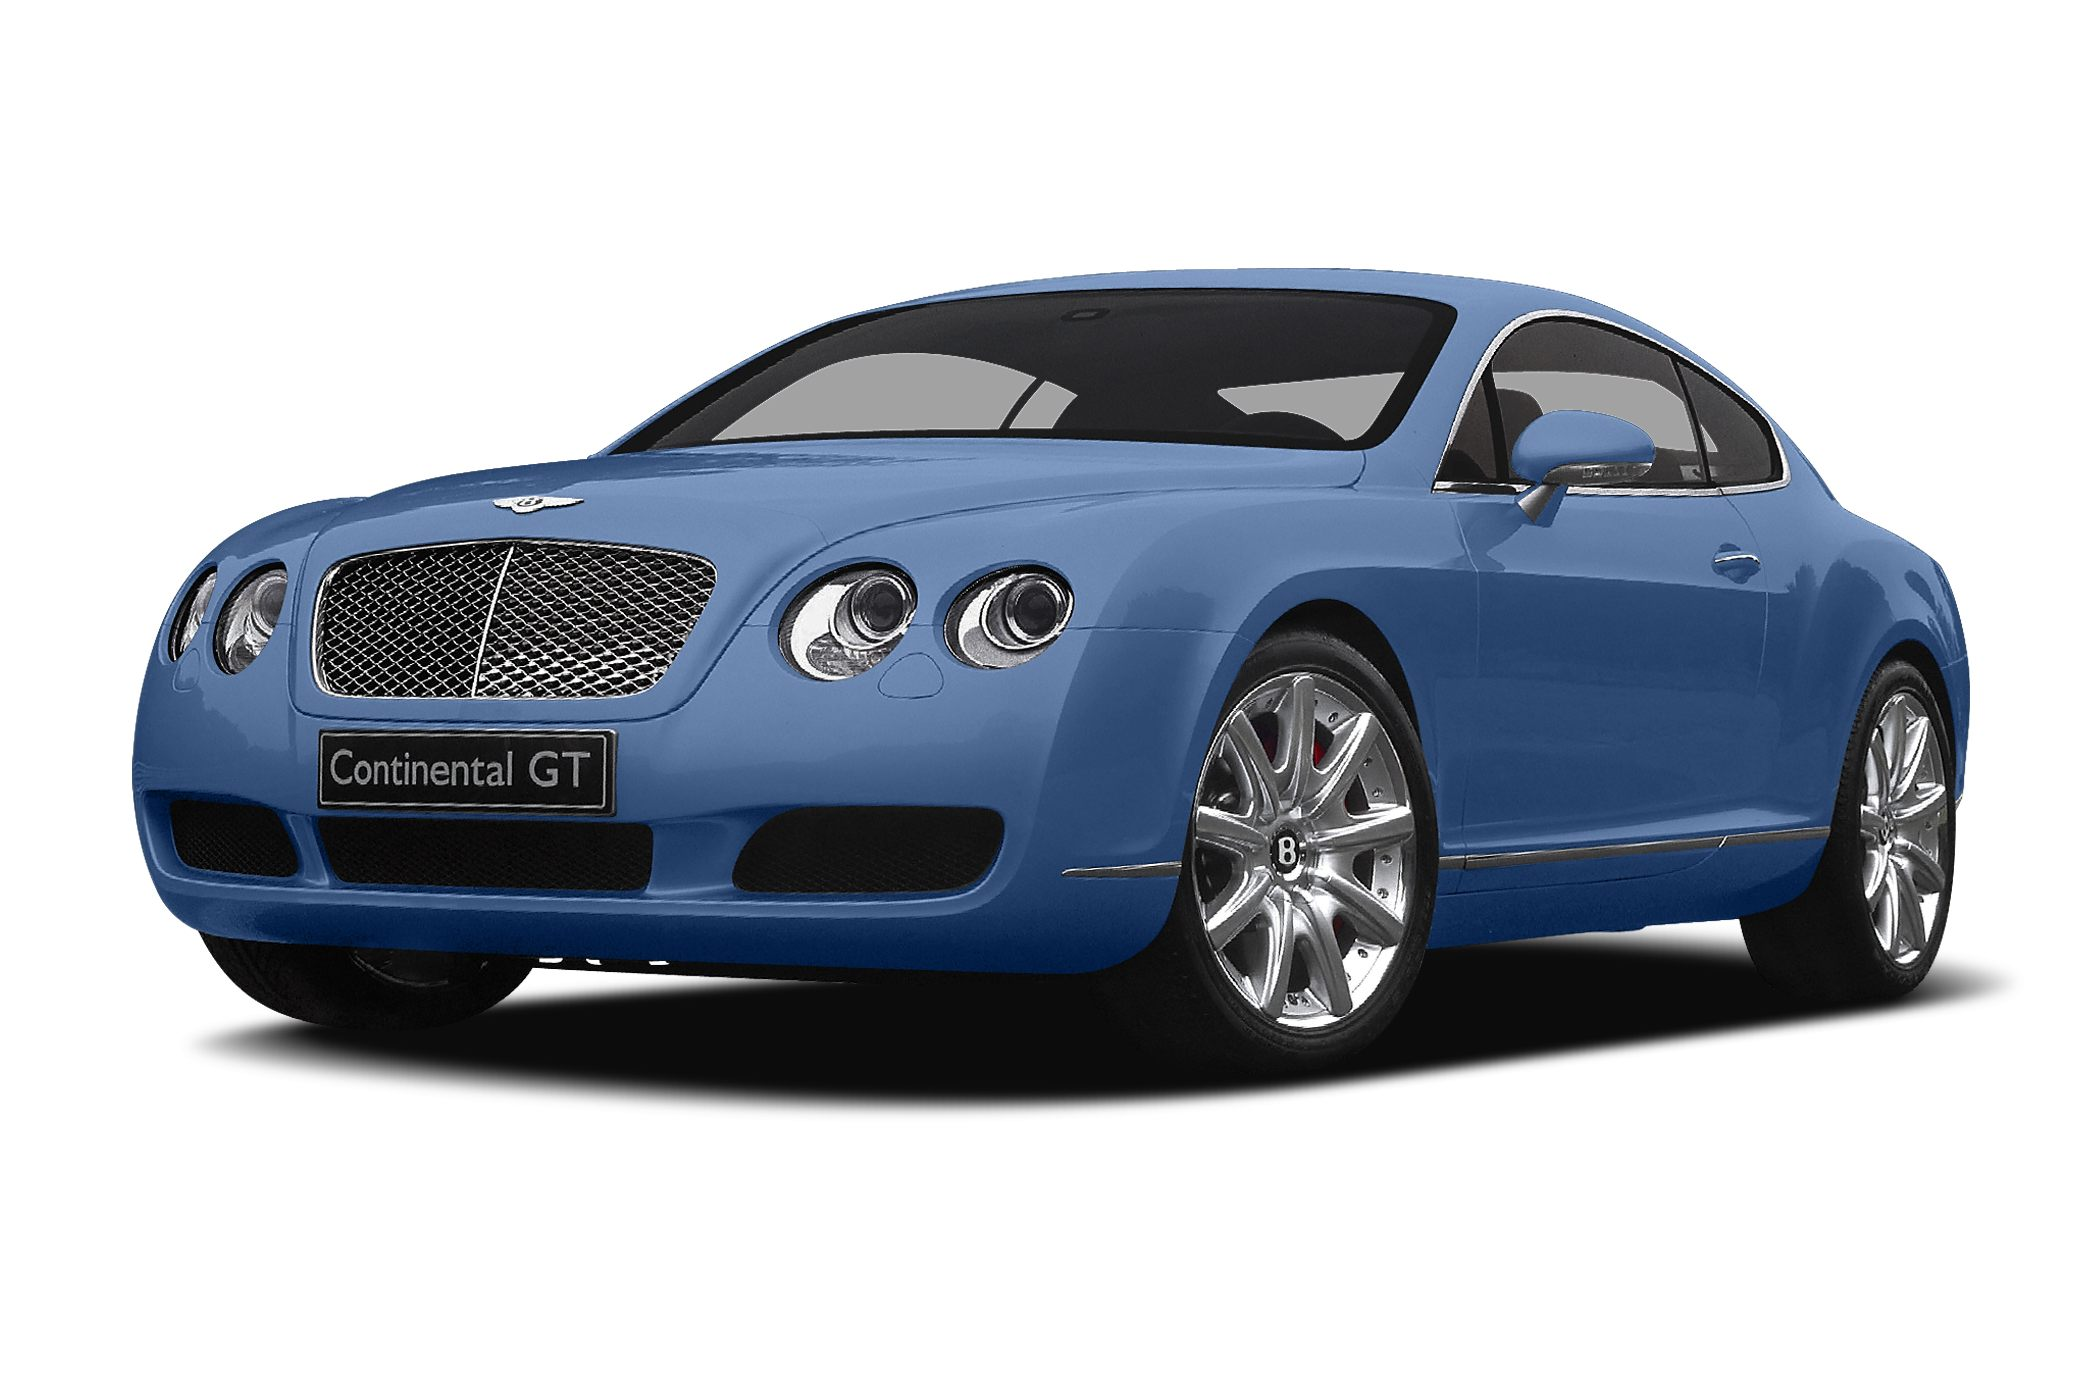 Img Usb Bec A on 2005 Bentley Continental Gt Msrp